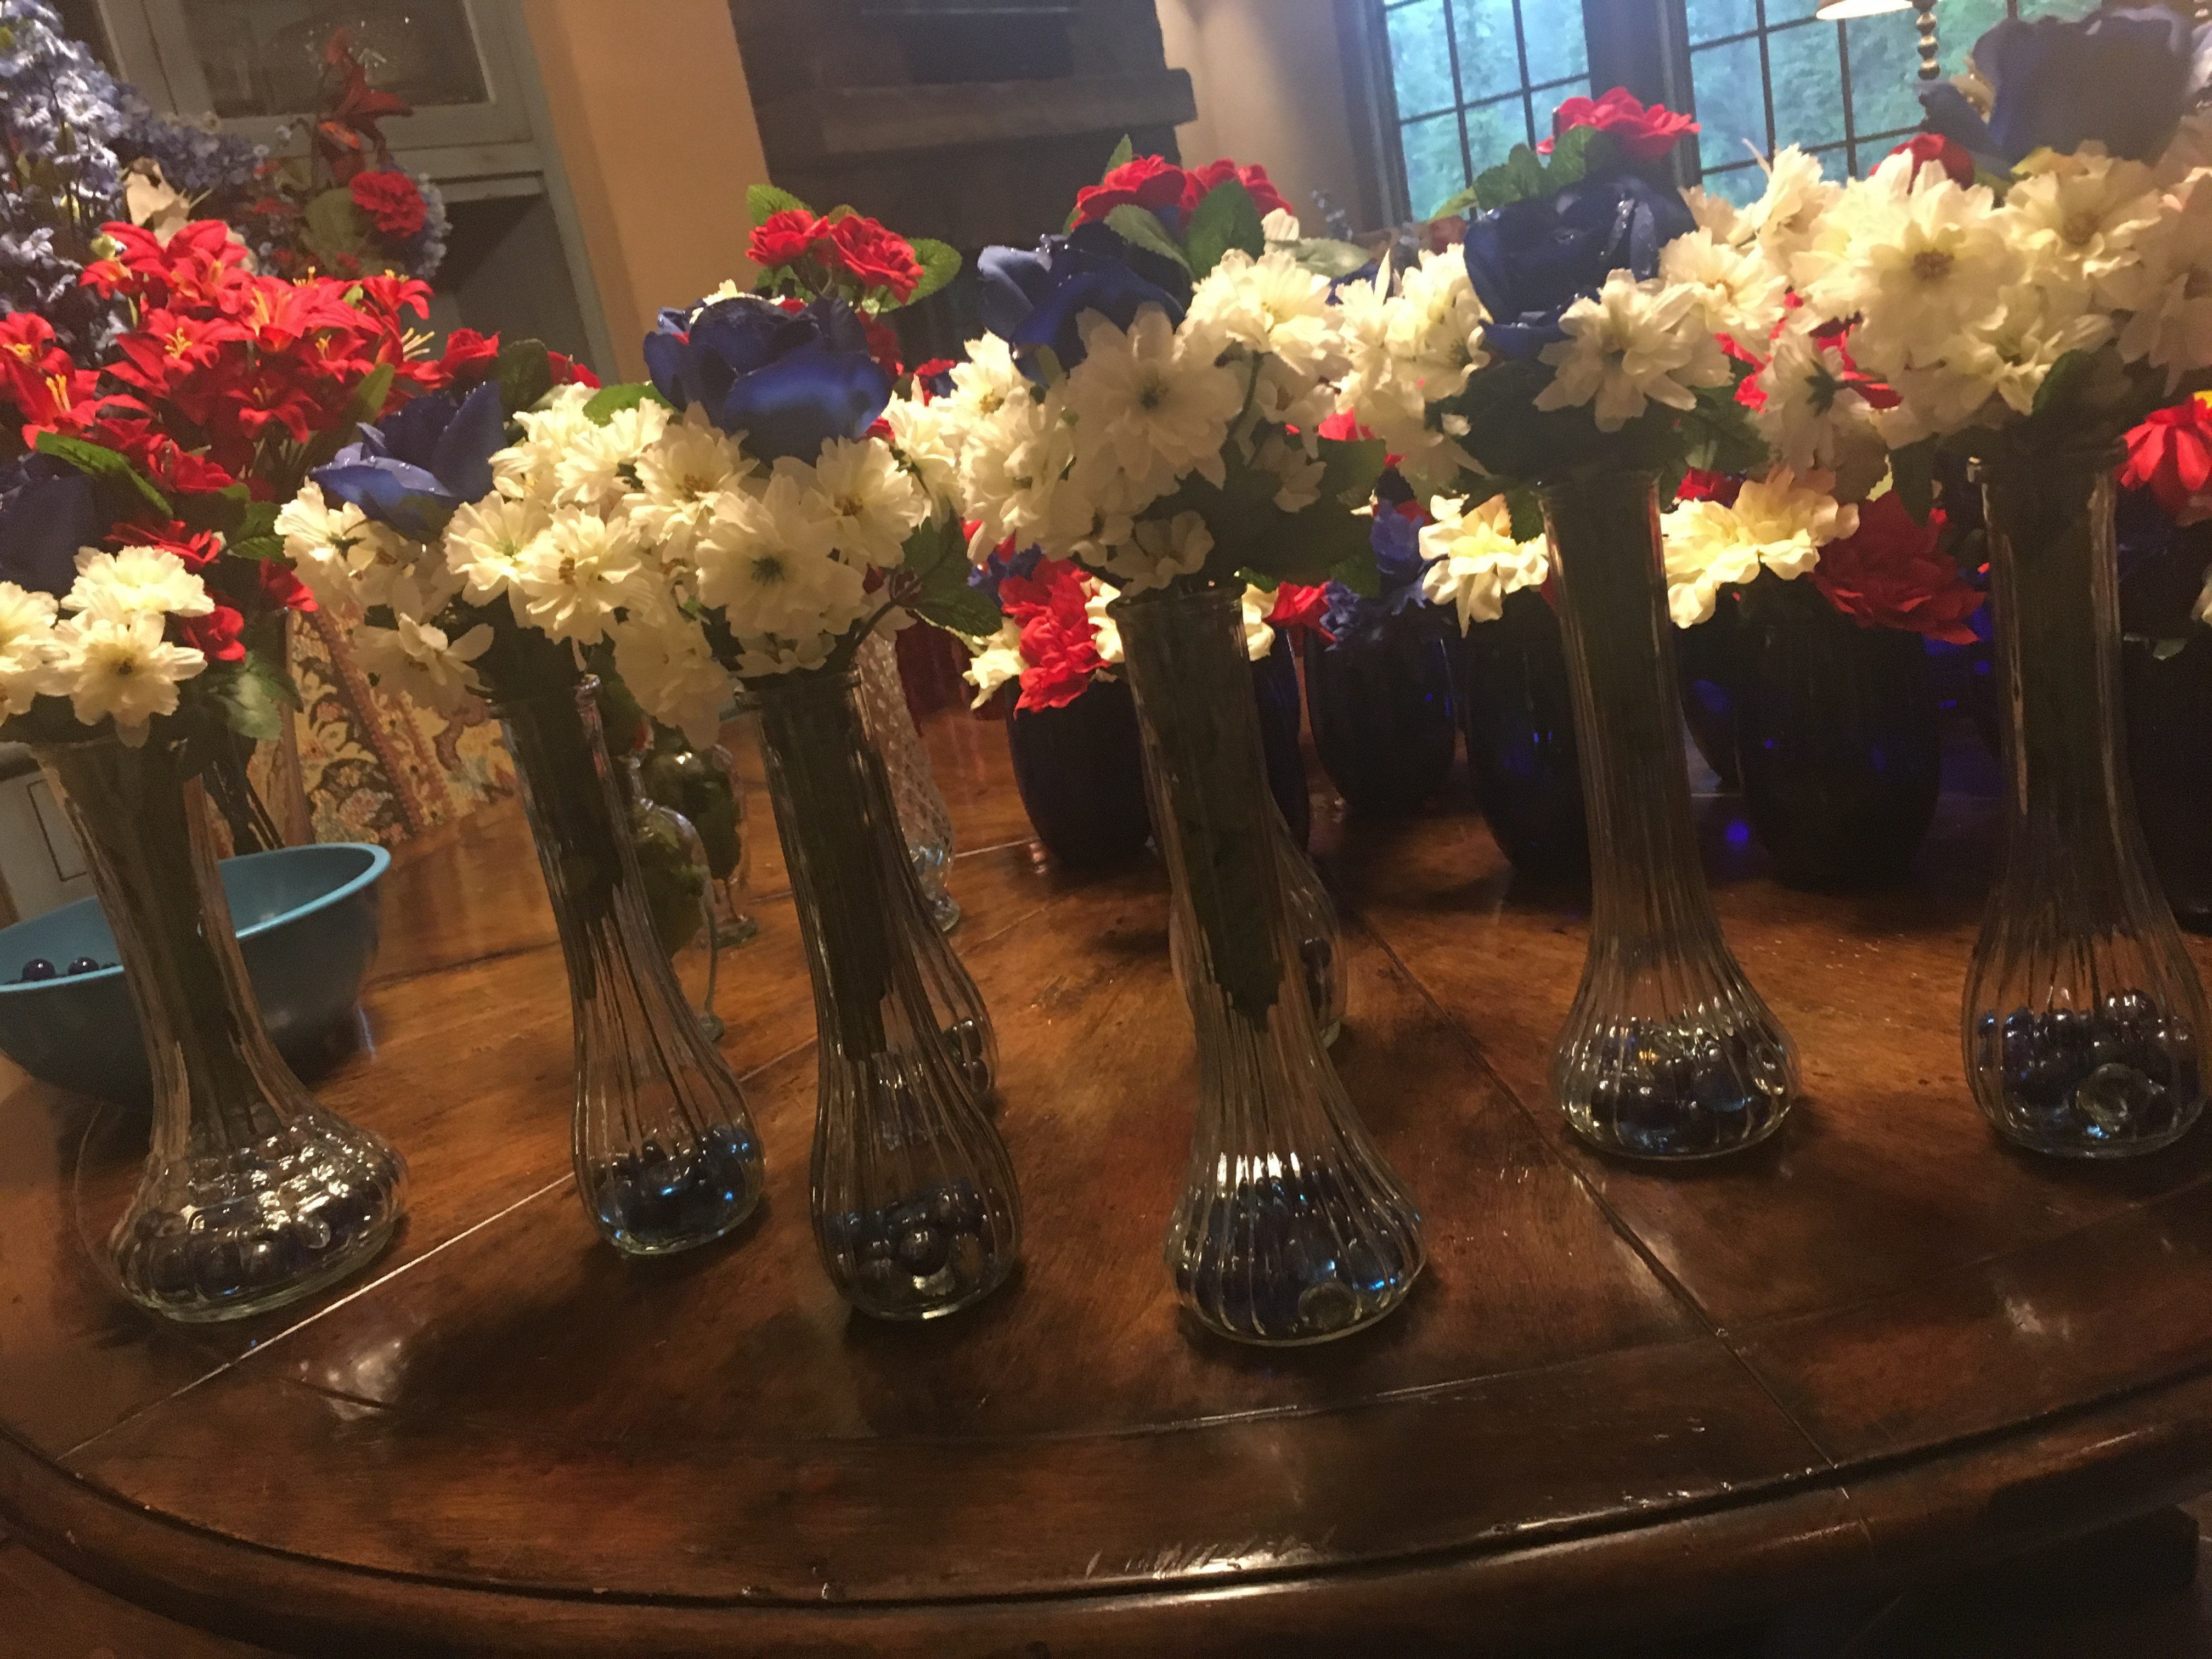 dollar tree glass vases of michaels glass vase pics dollar tree wedding decorations awesome h intended for michaels glass vase pics dollar tree wedding decorations awesome h vases dollar vase i 0d of